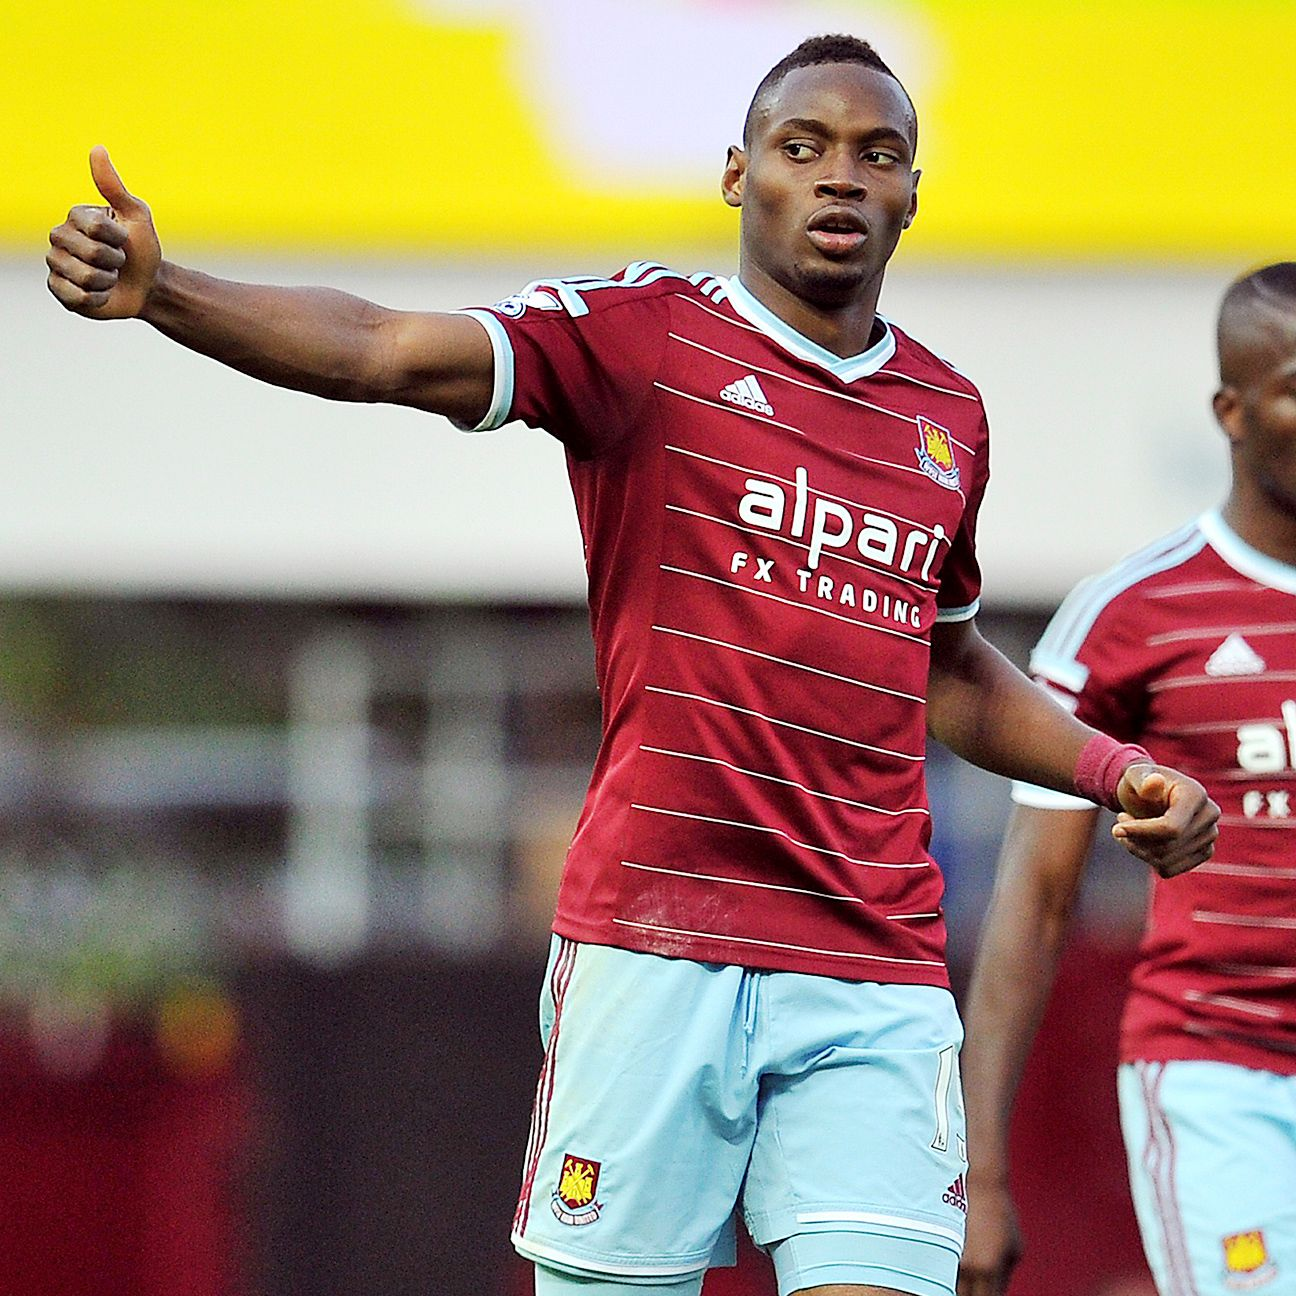 Diafra Sakho continues to be a pleasant surprise for West Ham supporters.